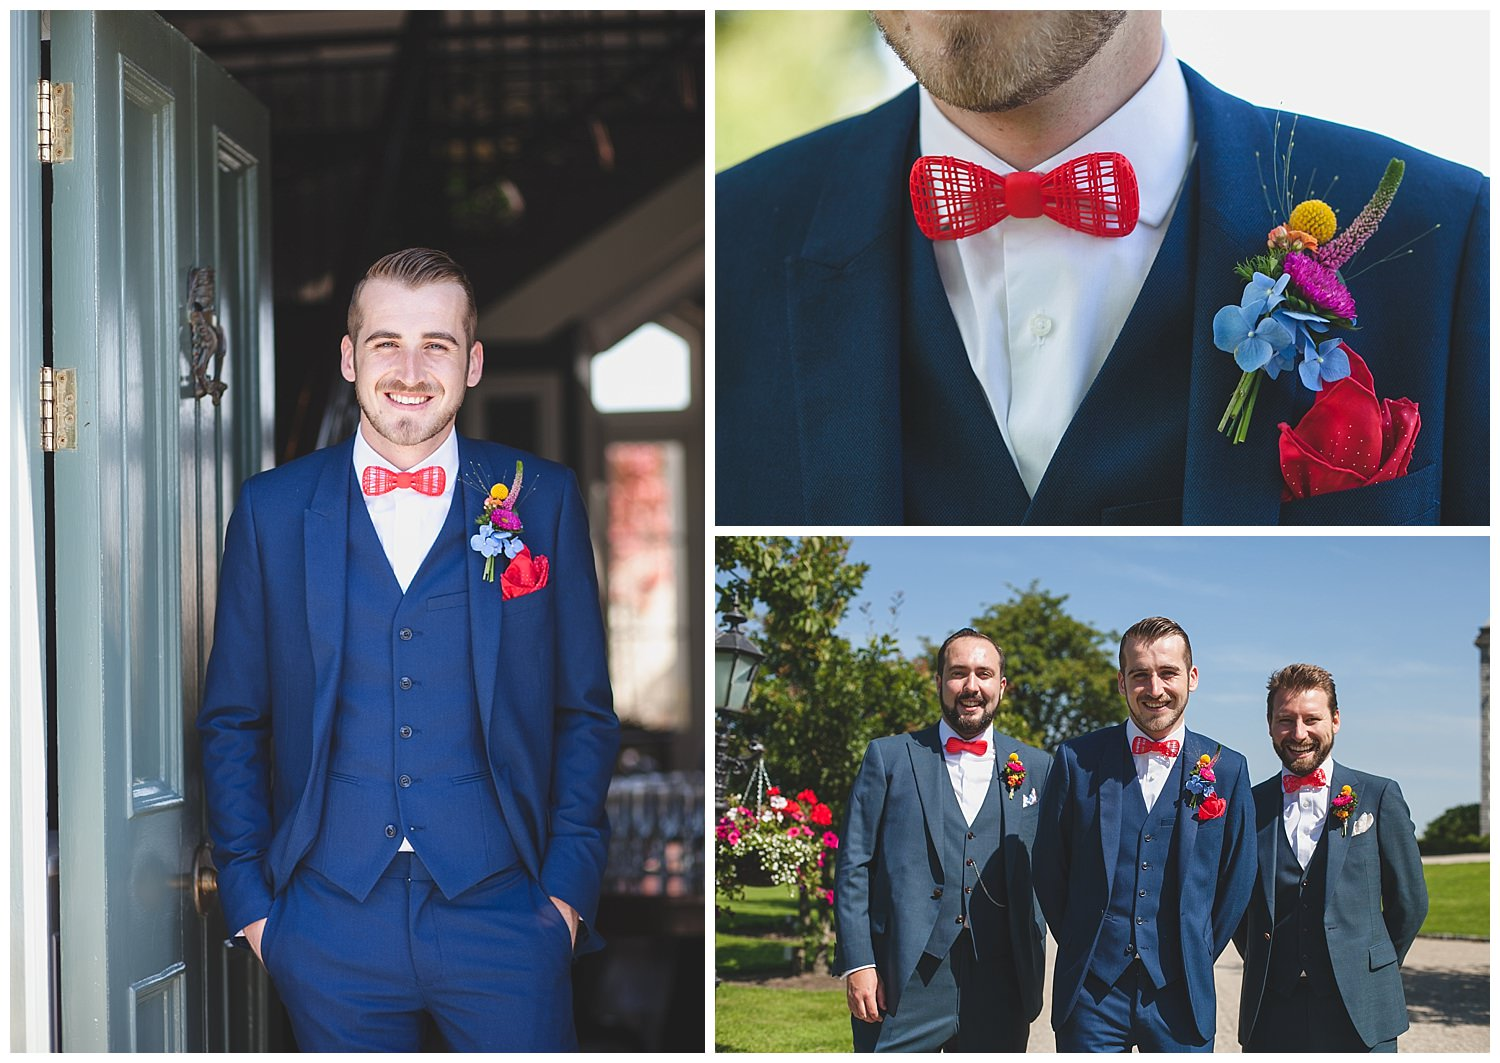 3 piece petrol blue suit with a red bowtie, red cravat and colourful buttoner